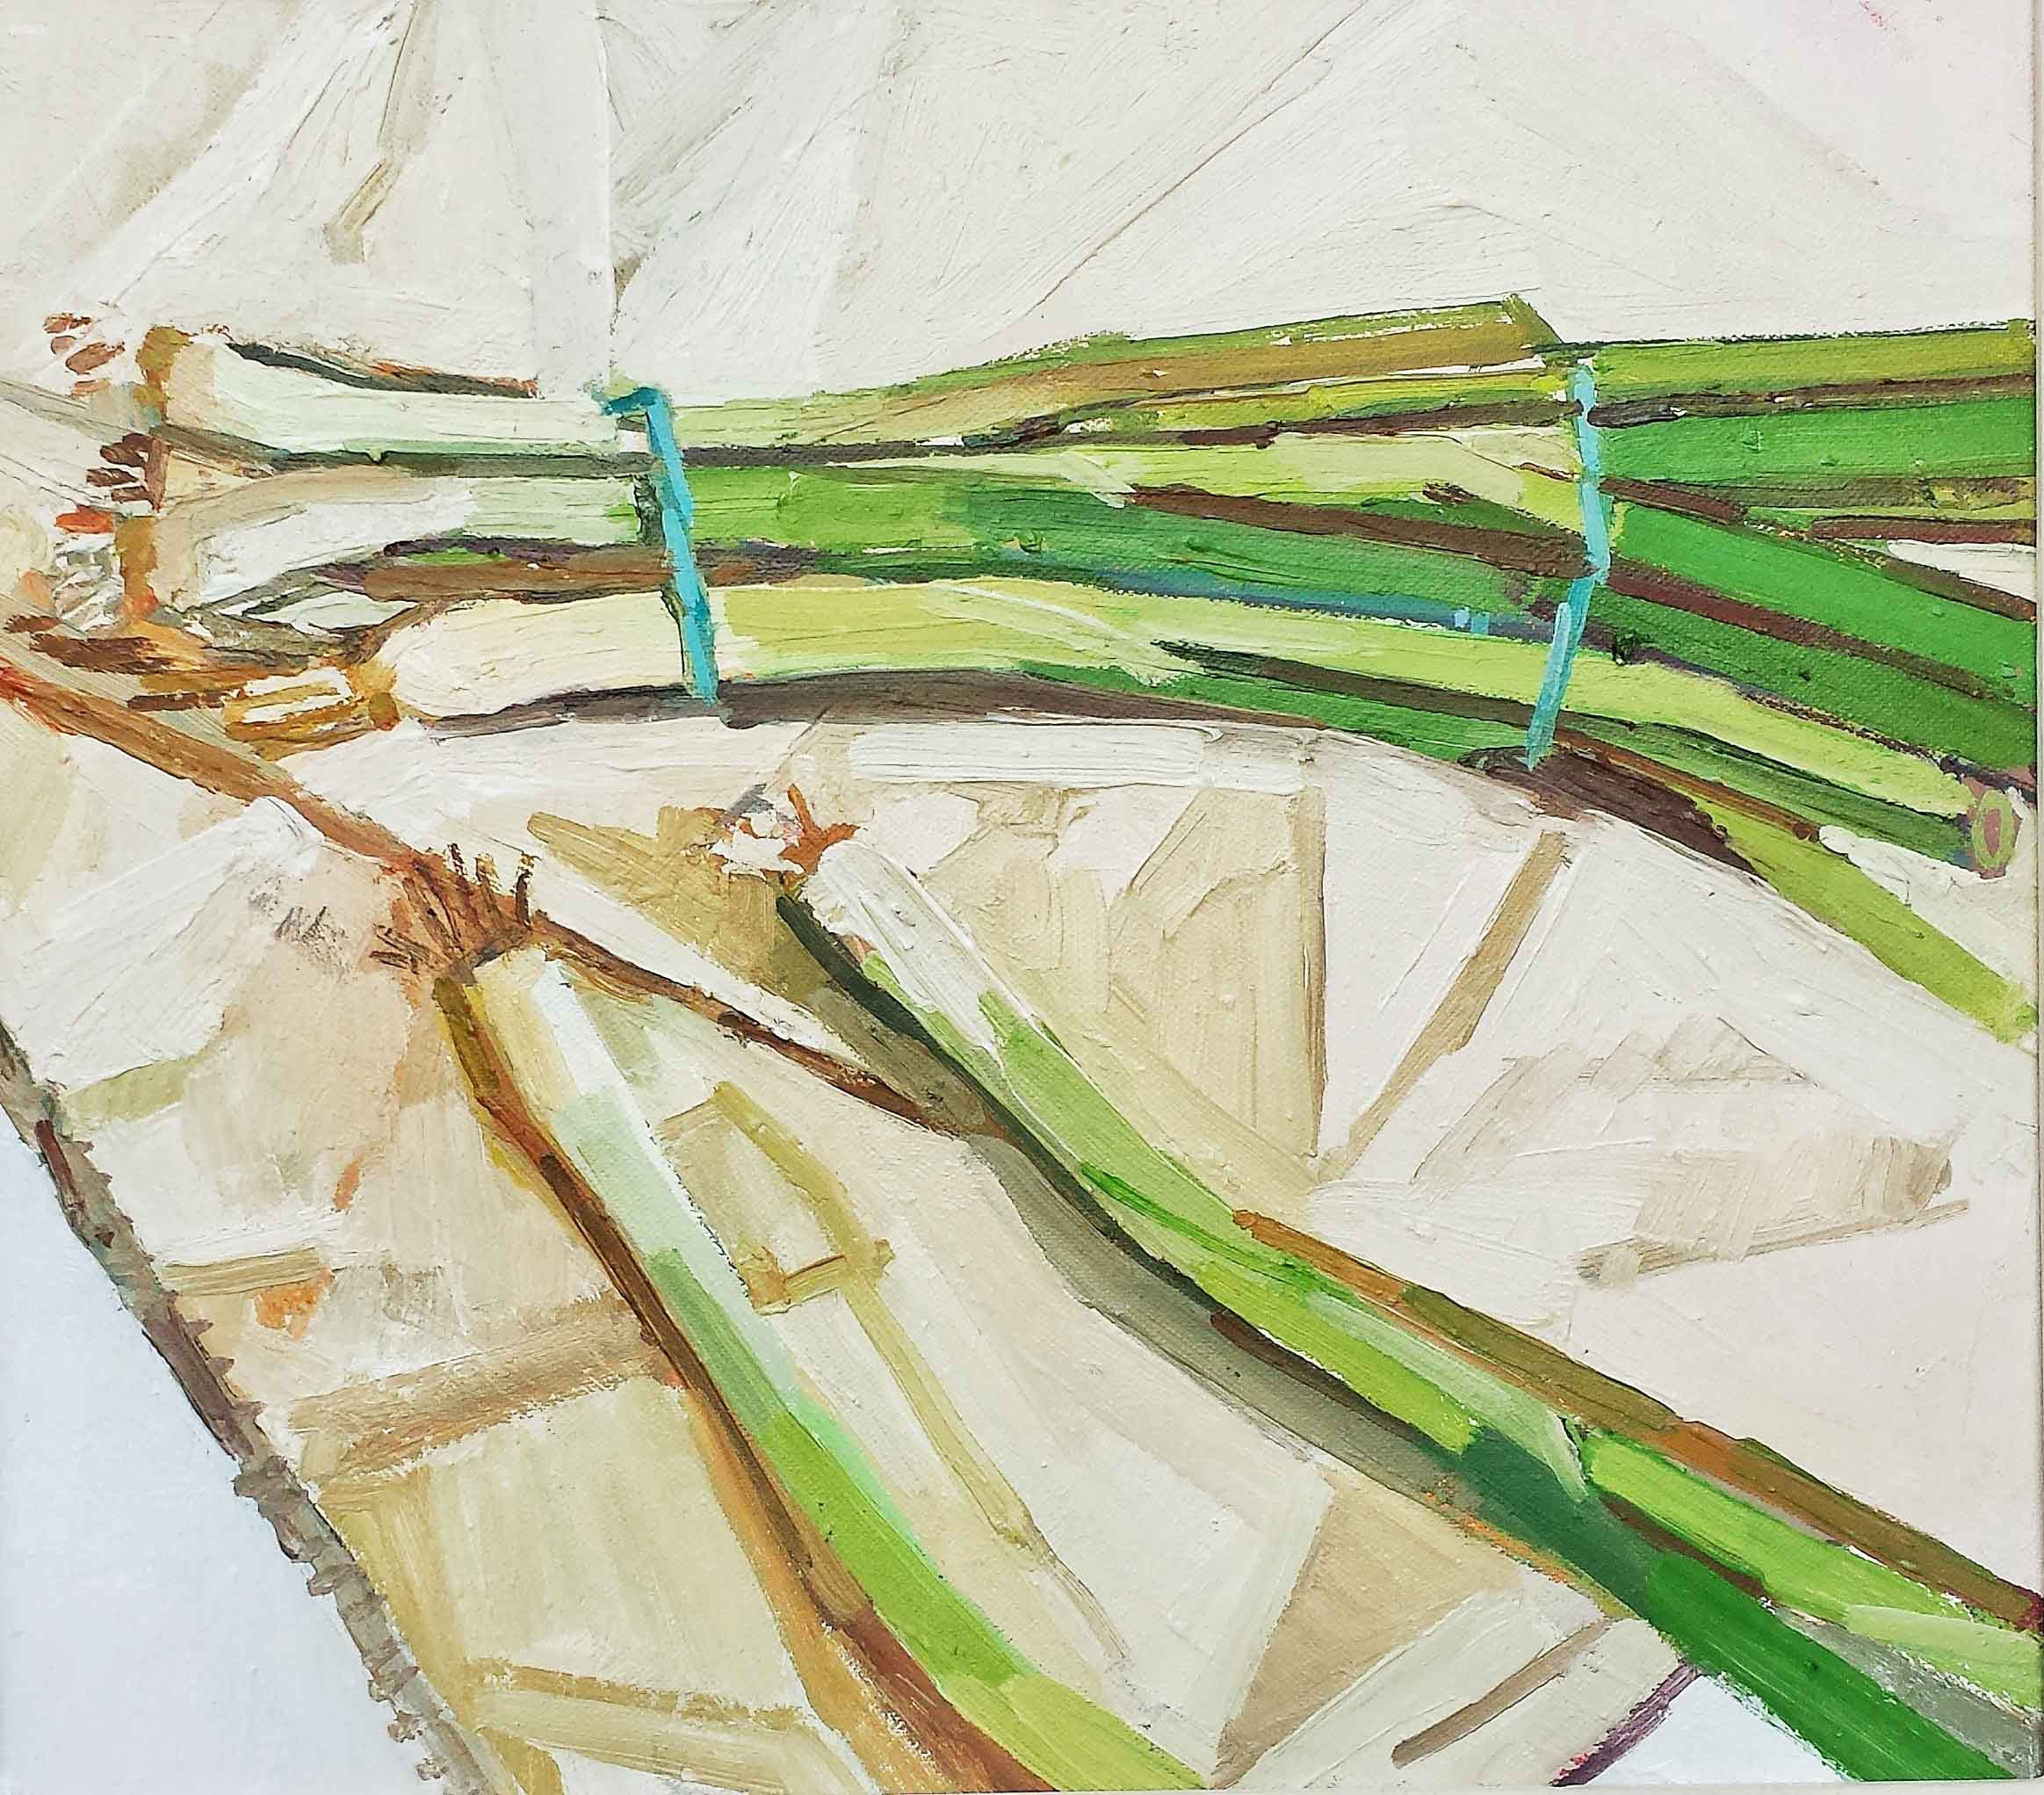 38 x 33 Spring Onions, Oil on Canvas